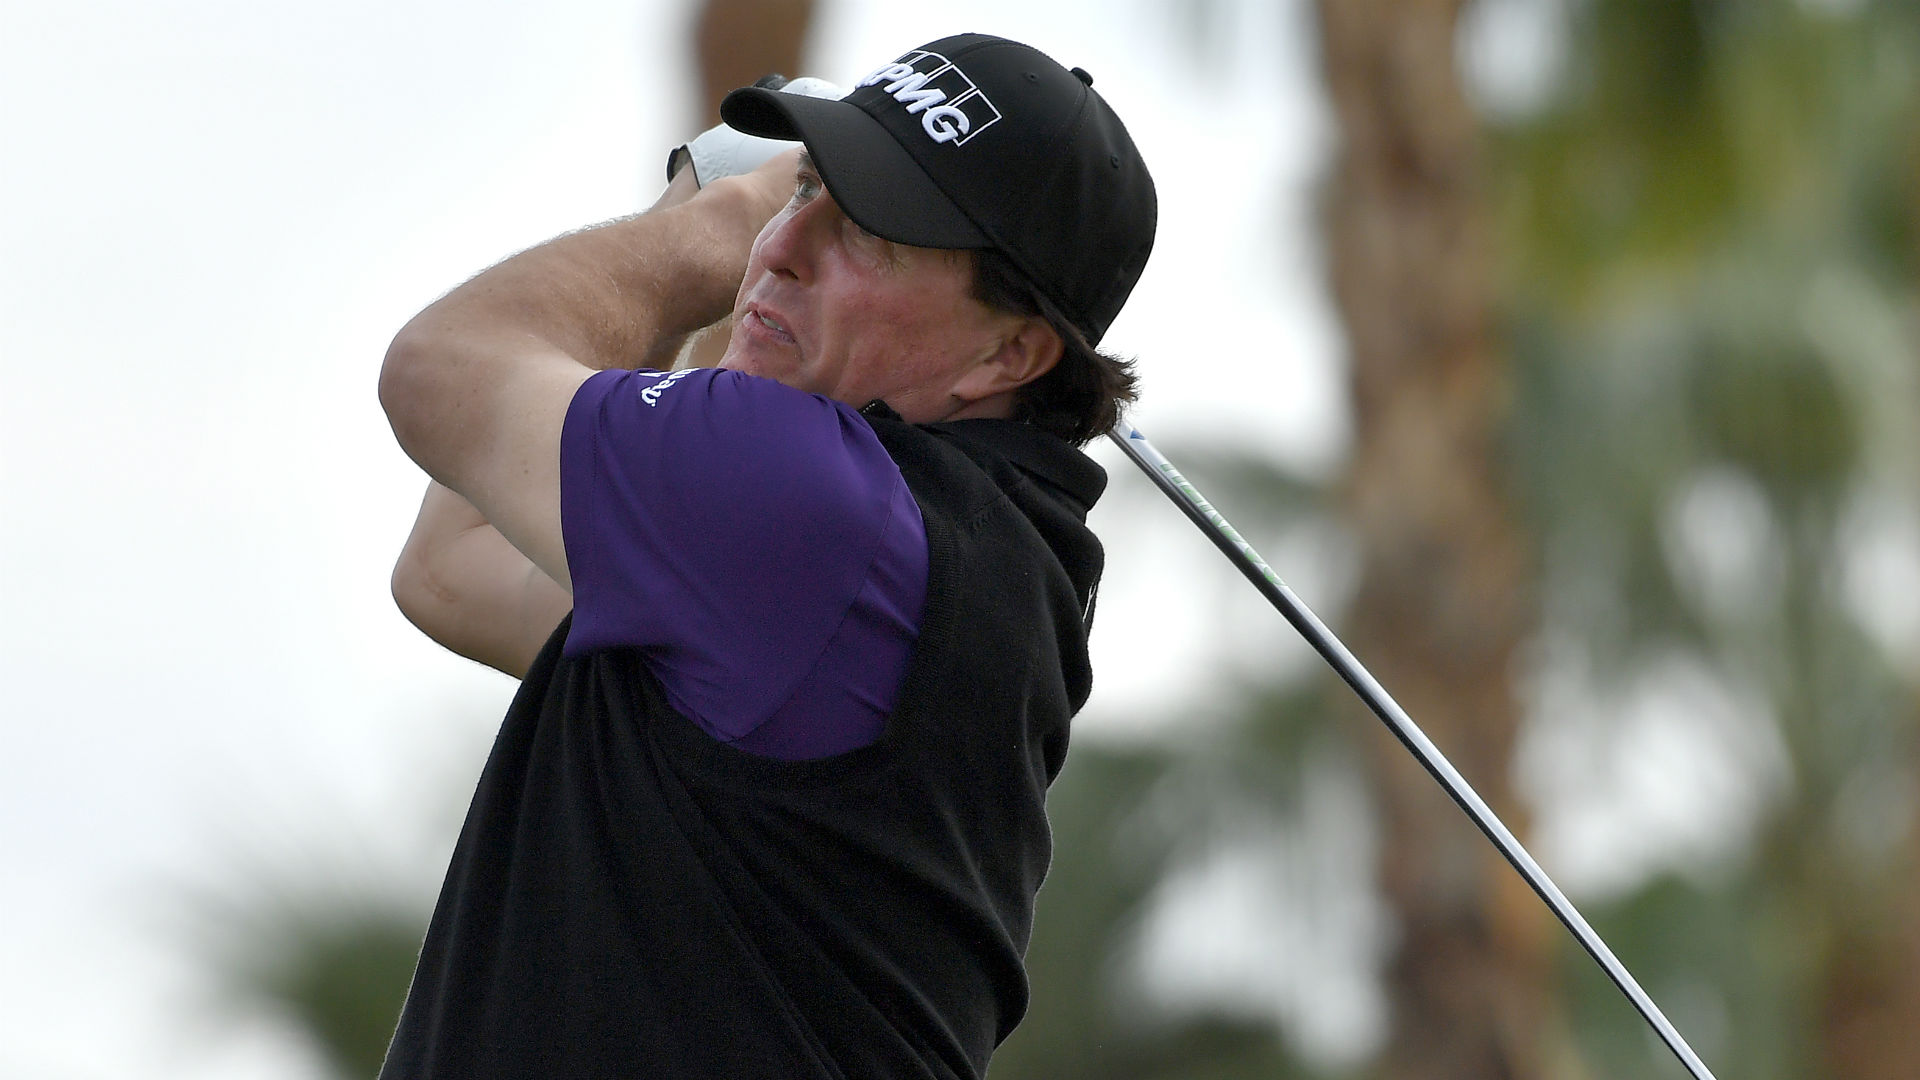 Mickelson kicks off the year by flirting with 59 at Desert Classic